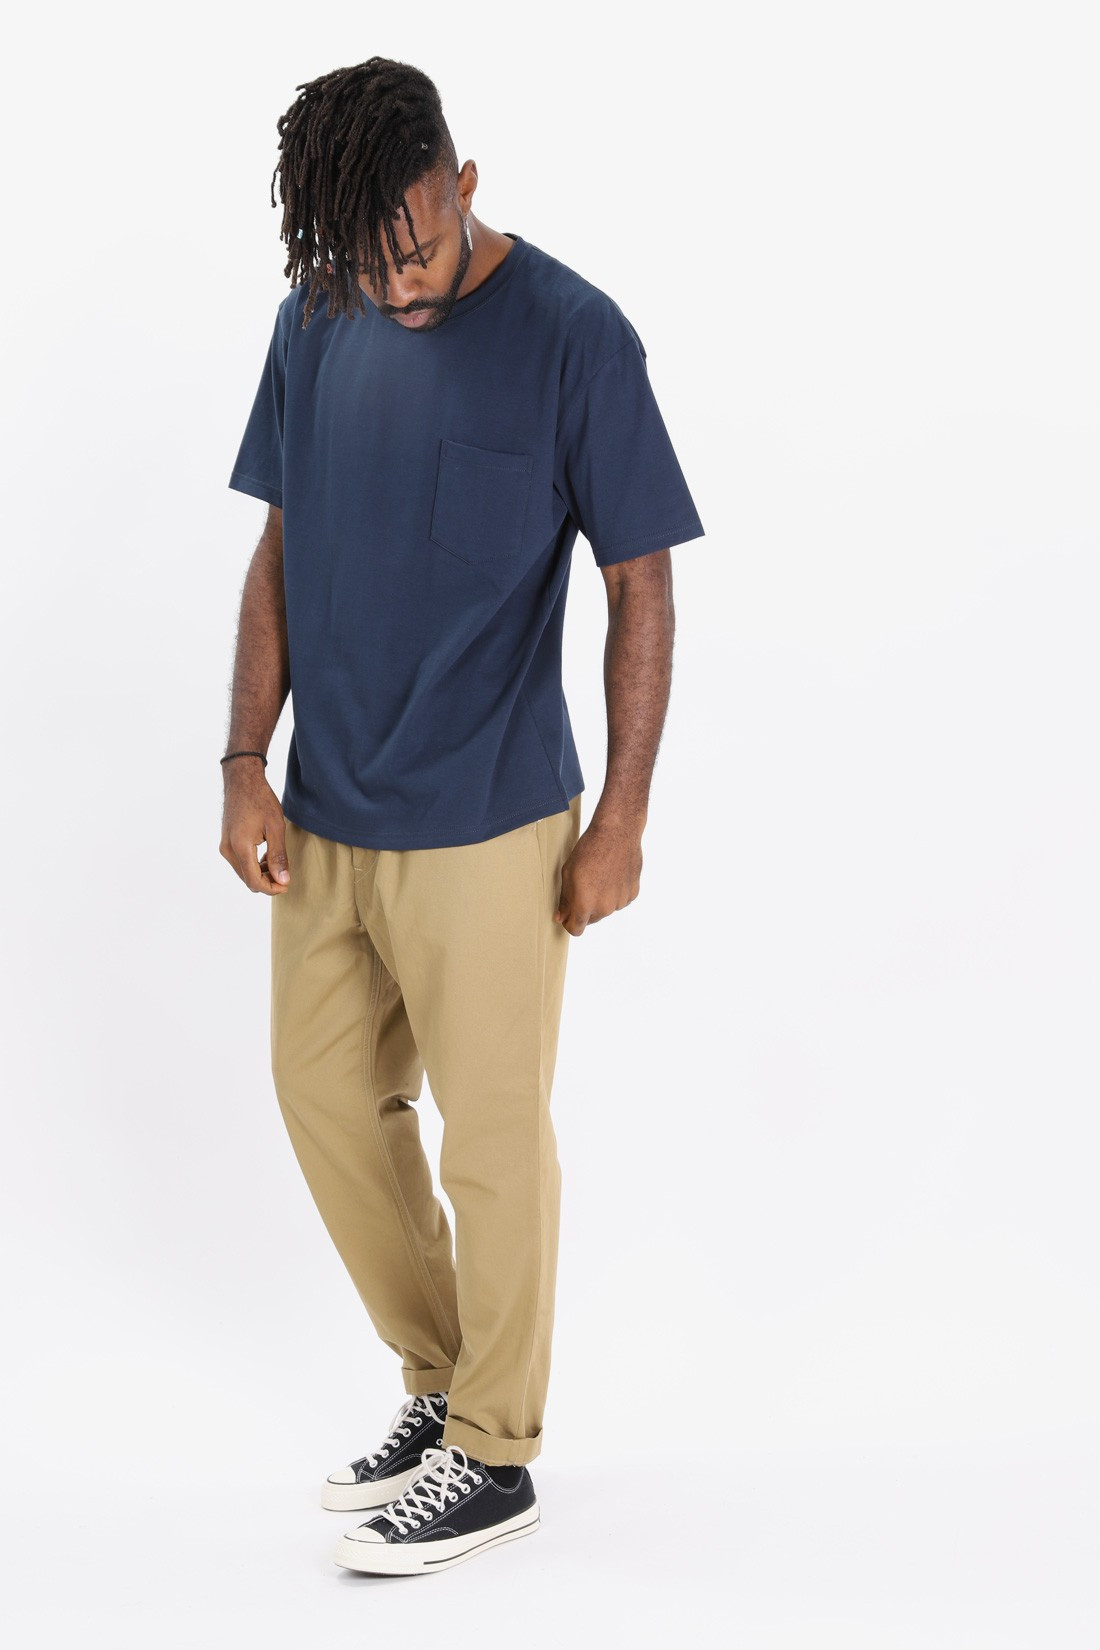 ORSLOW / Crew pocket tee Navy